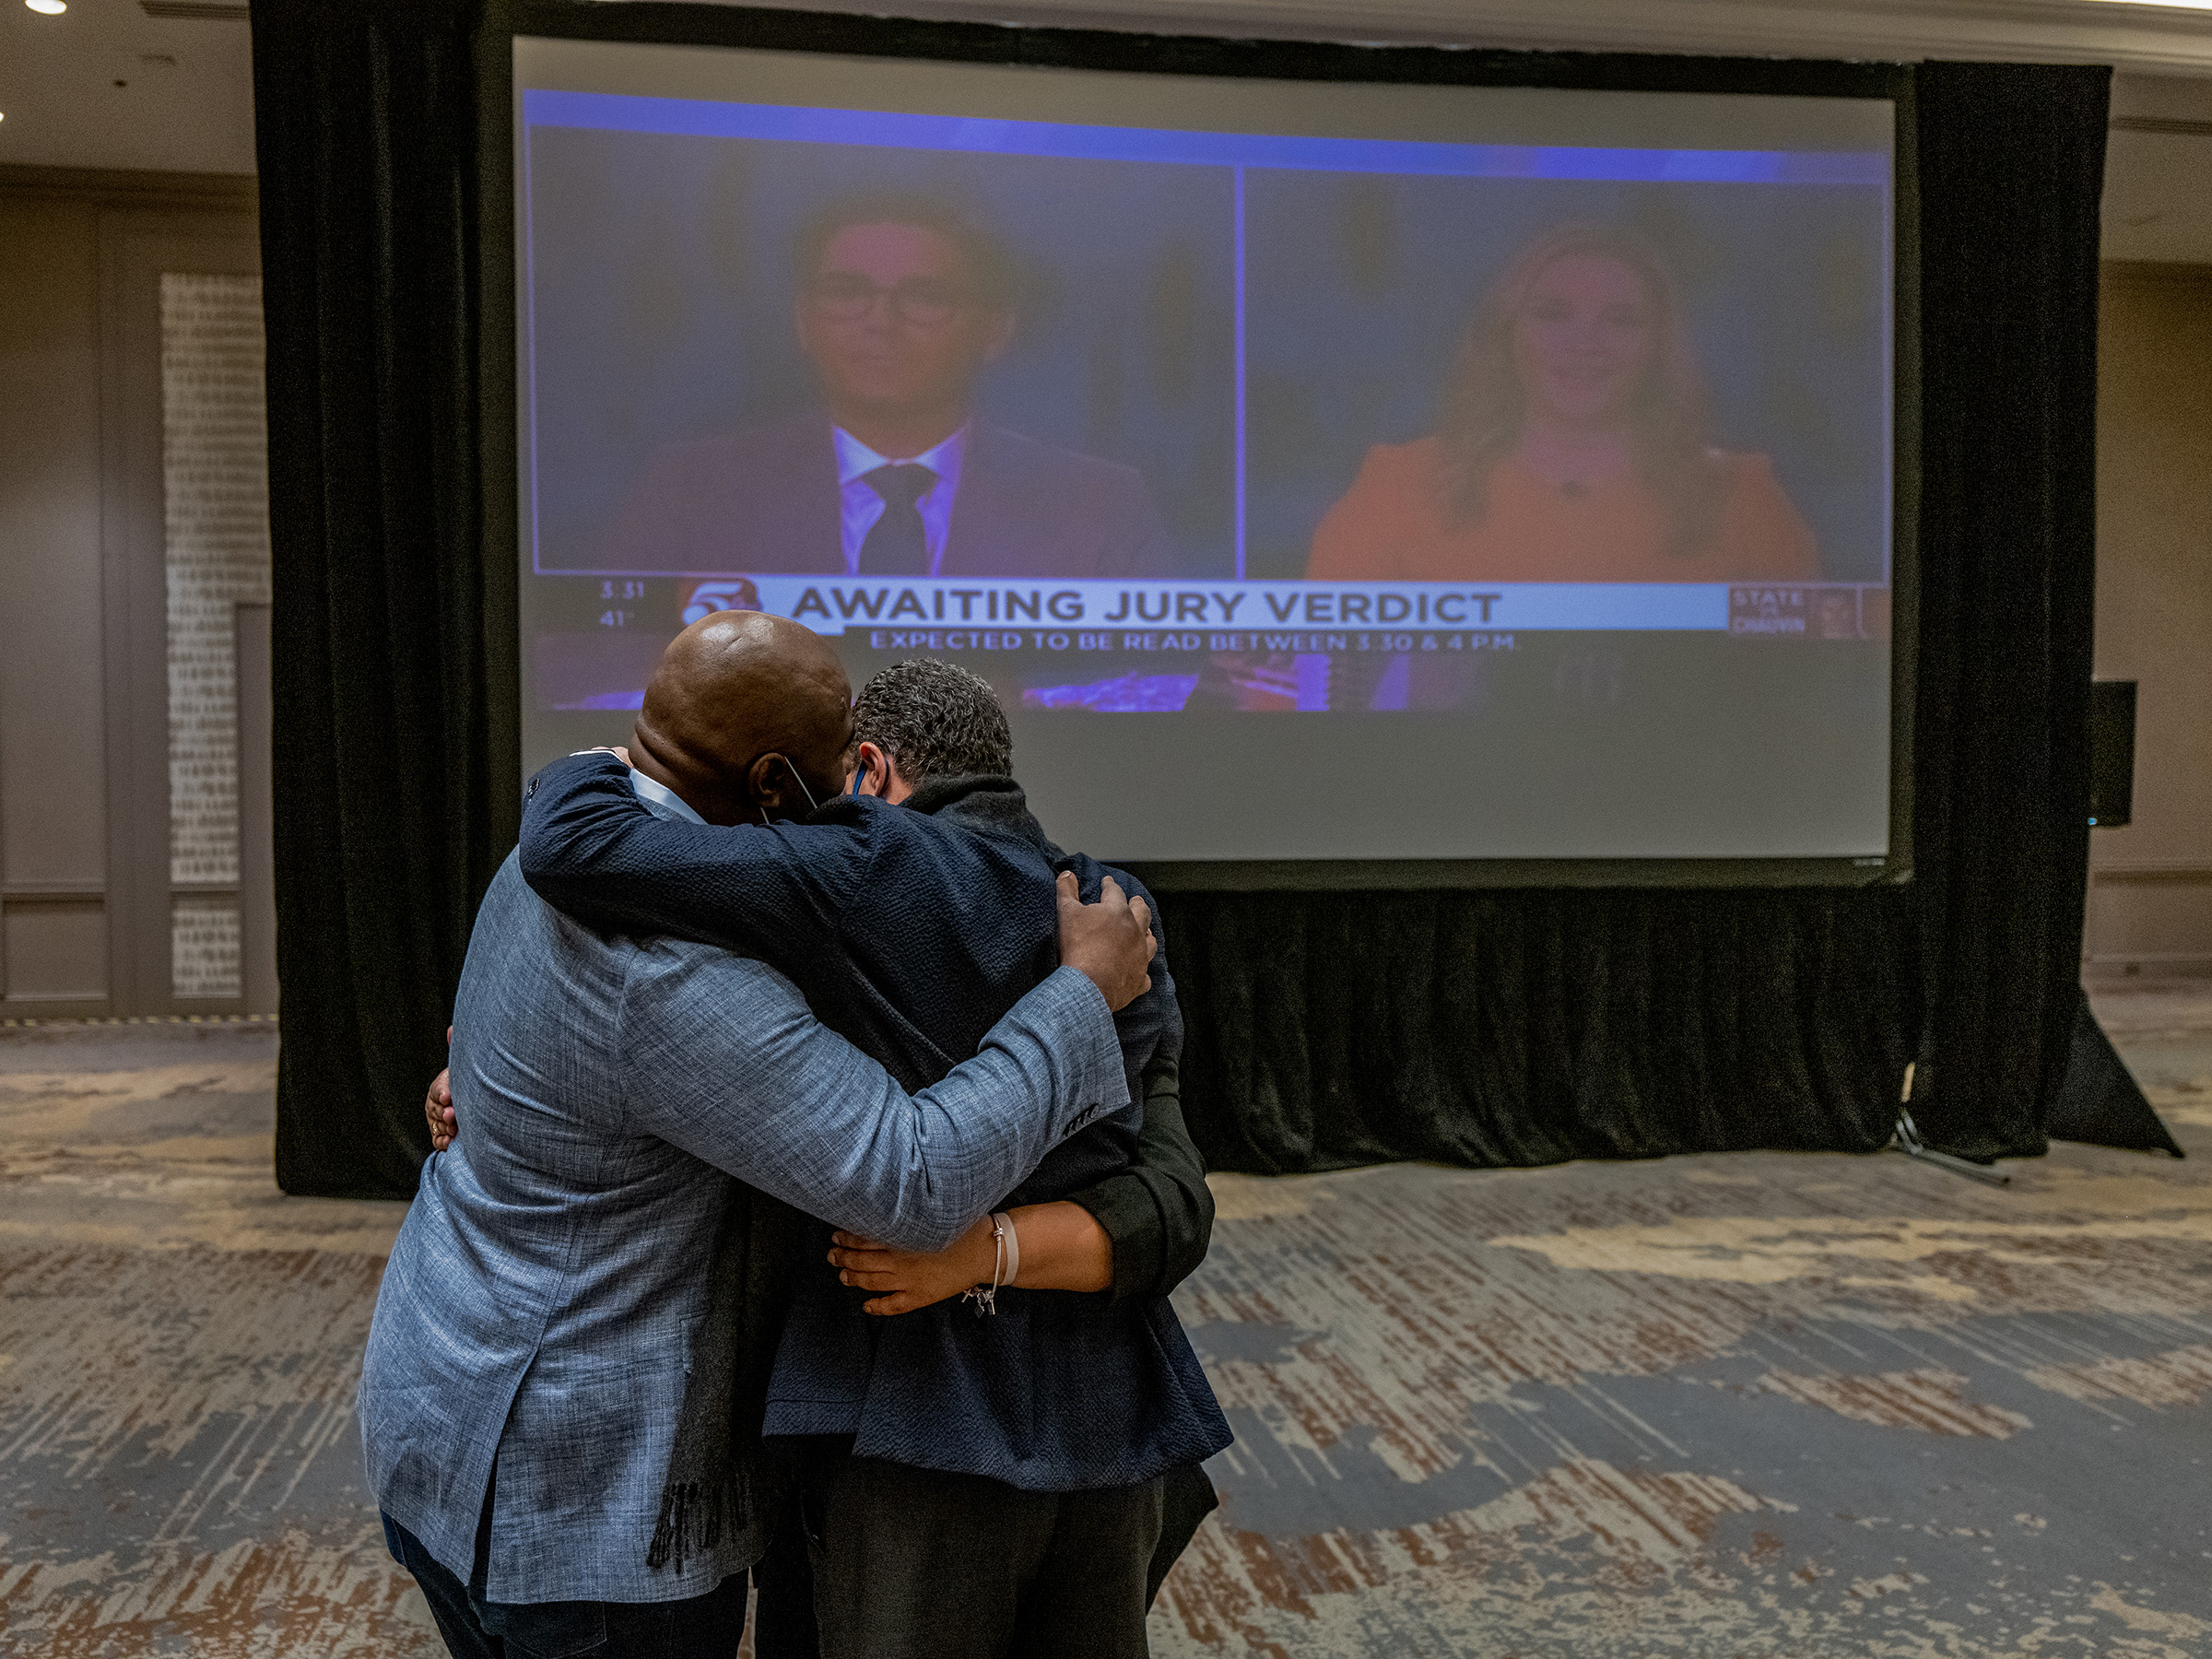 Members of George Floyd's family and legal team hug after the guilty verdict is called in the trial of former police officer Derek Chauvin in Minneapolis, on April 20.